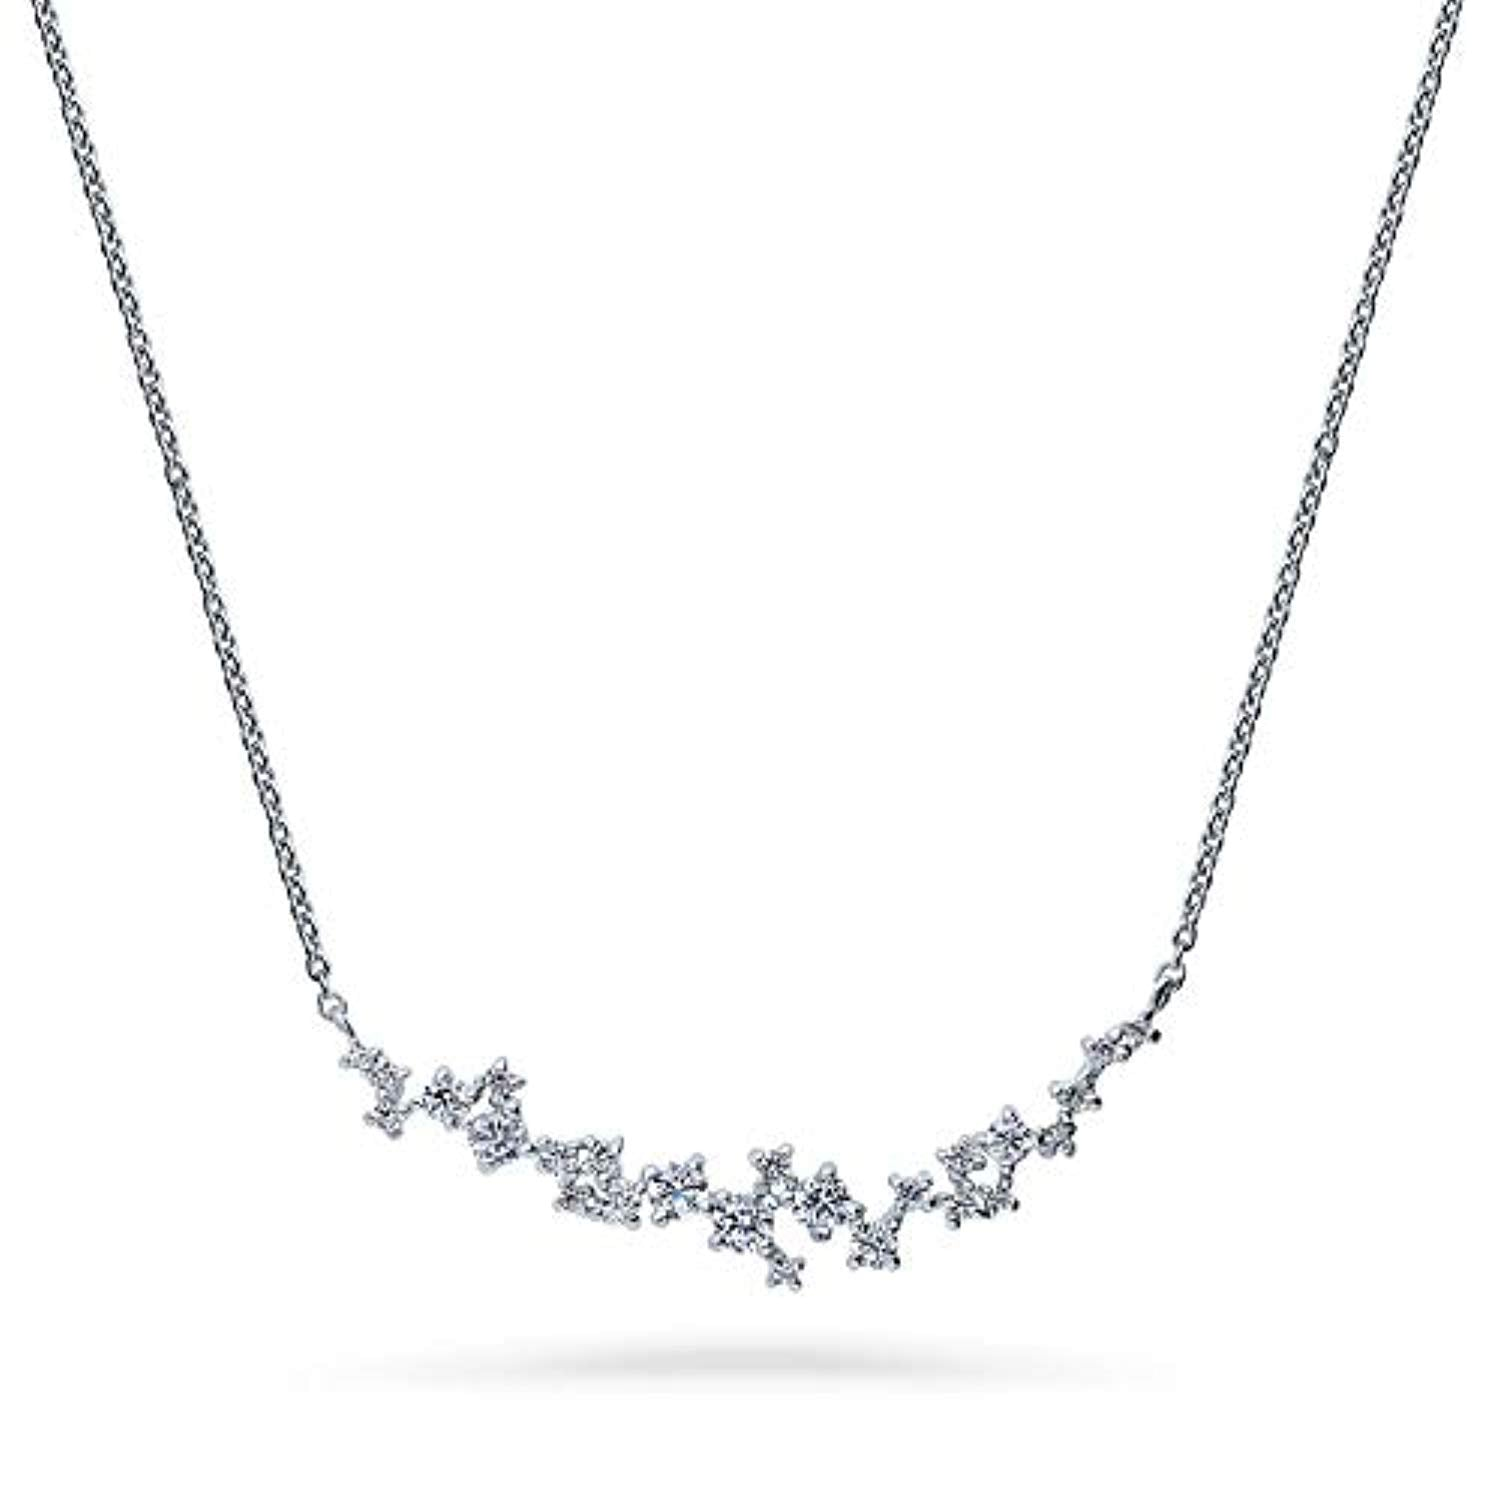 Rhodium Plated Sterling Silver Cubic Zirconia CZ Cluster Bar Wedding Pendant Necklace